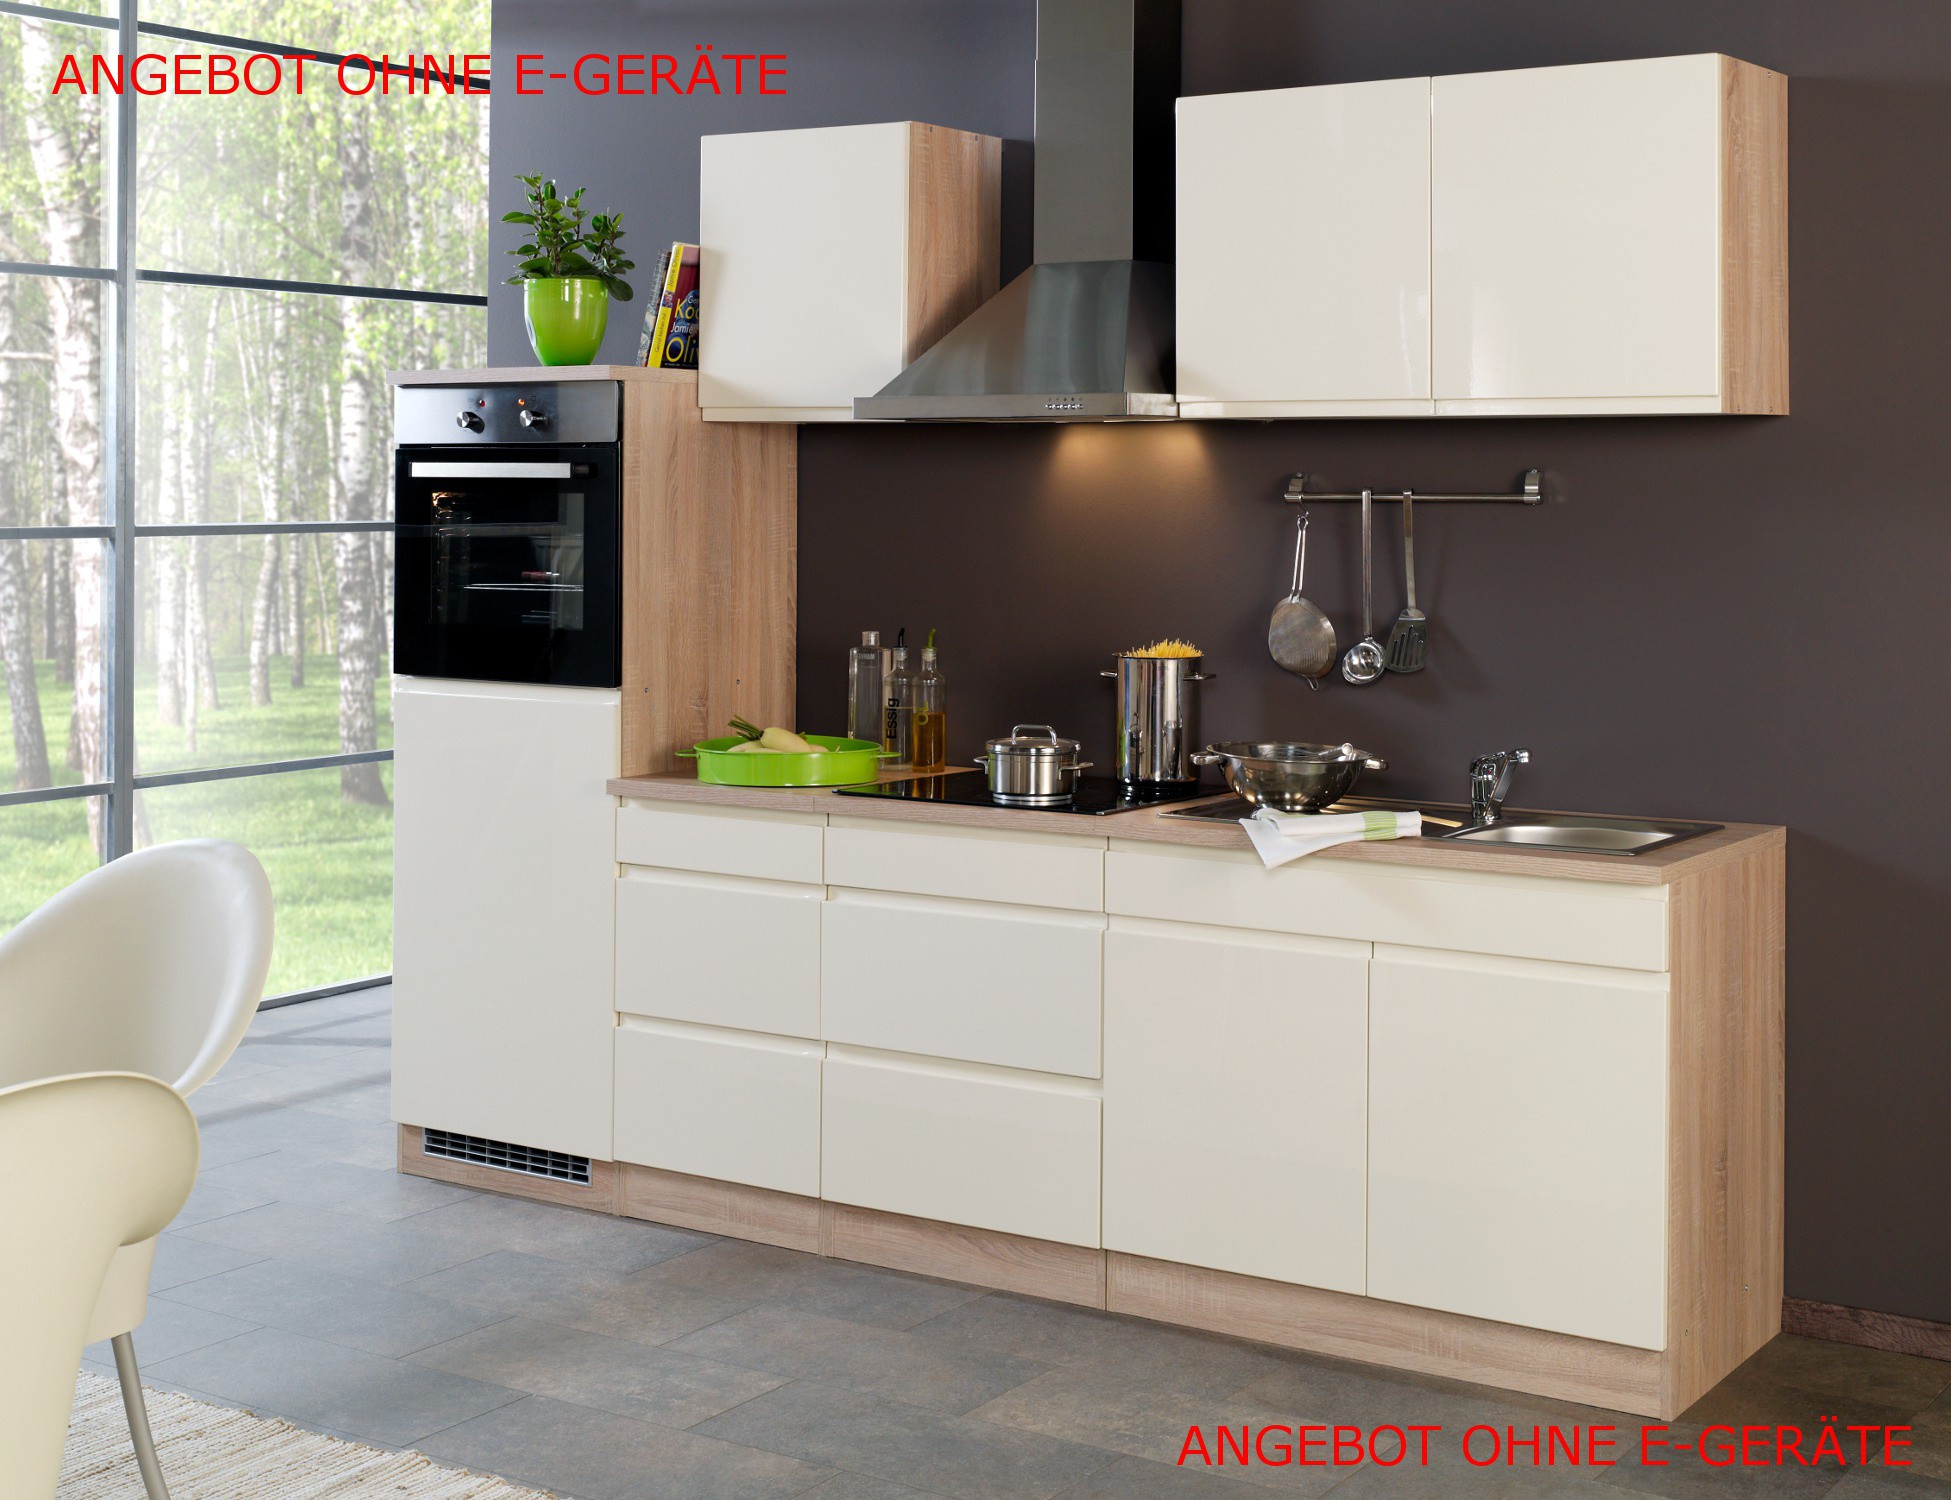 neu k chen leerblock k chenzeile cardiff k chenblock 270cm hochglanz creme ebay. Black Bedroom Furniture Sets. Home Design Ideas